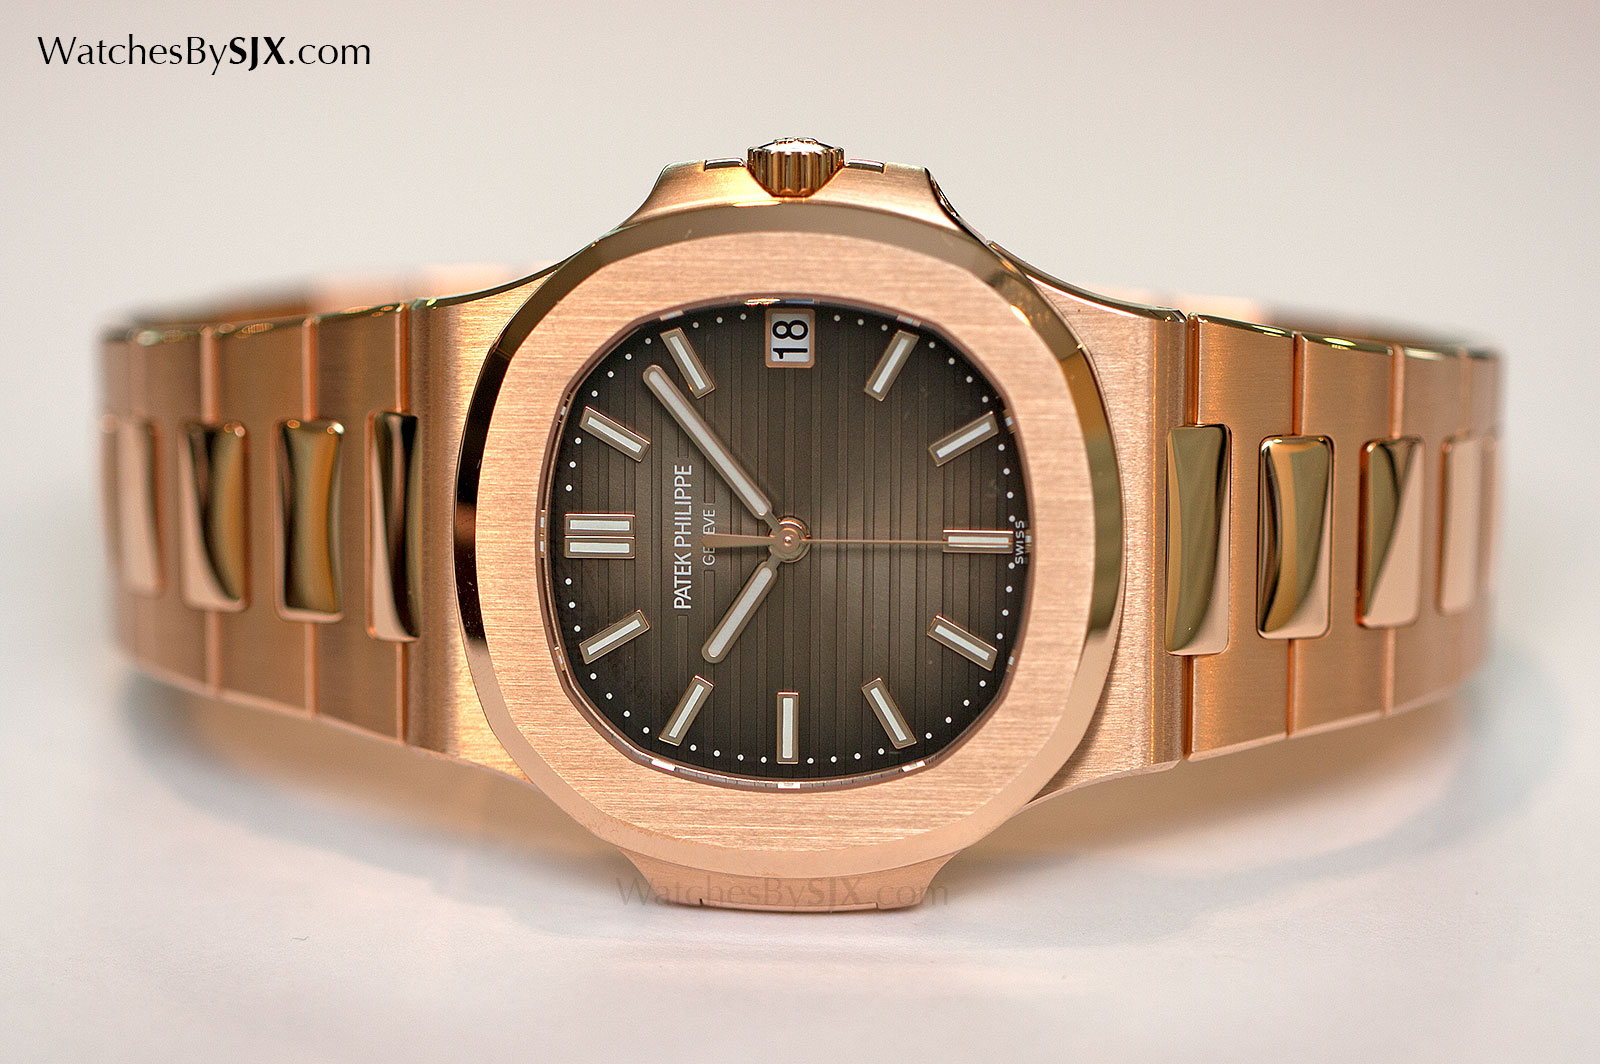 d57c2e9fe58 Up Close With The Patek Philippe Nautilus Ref. 5711/1R Rose Gold On ...